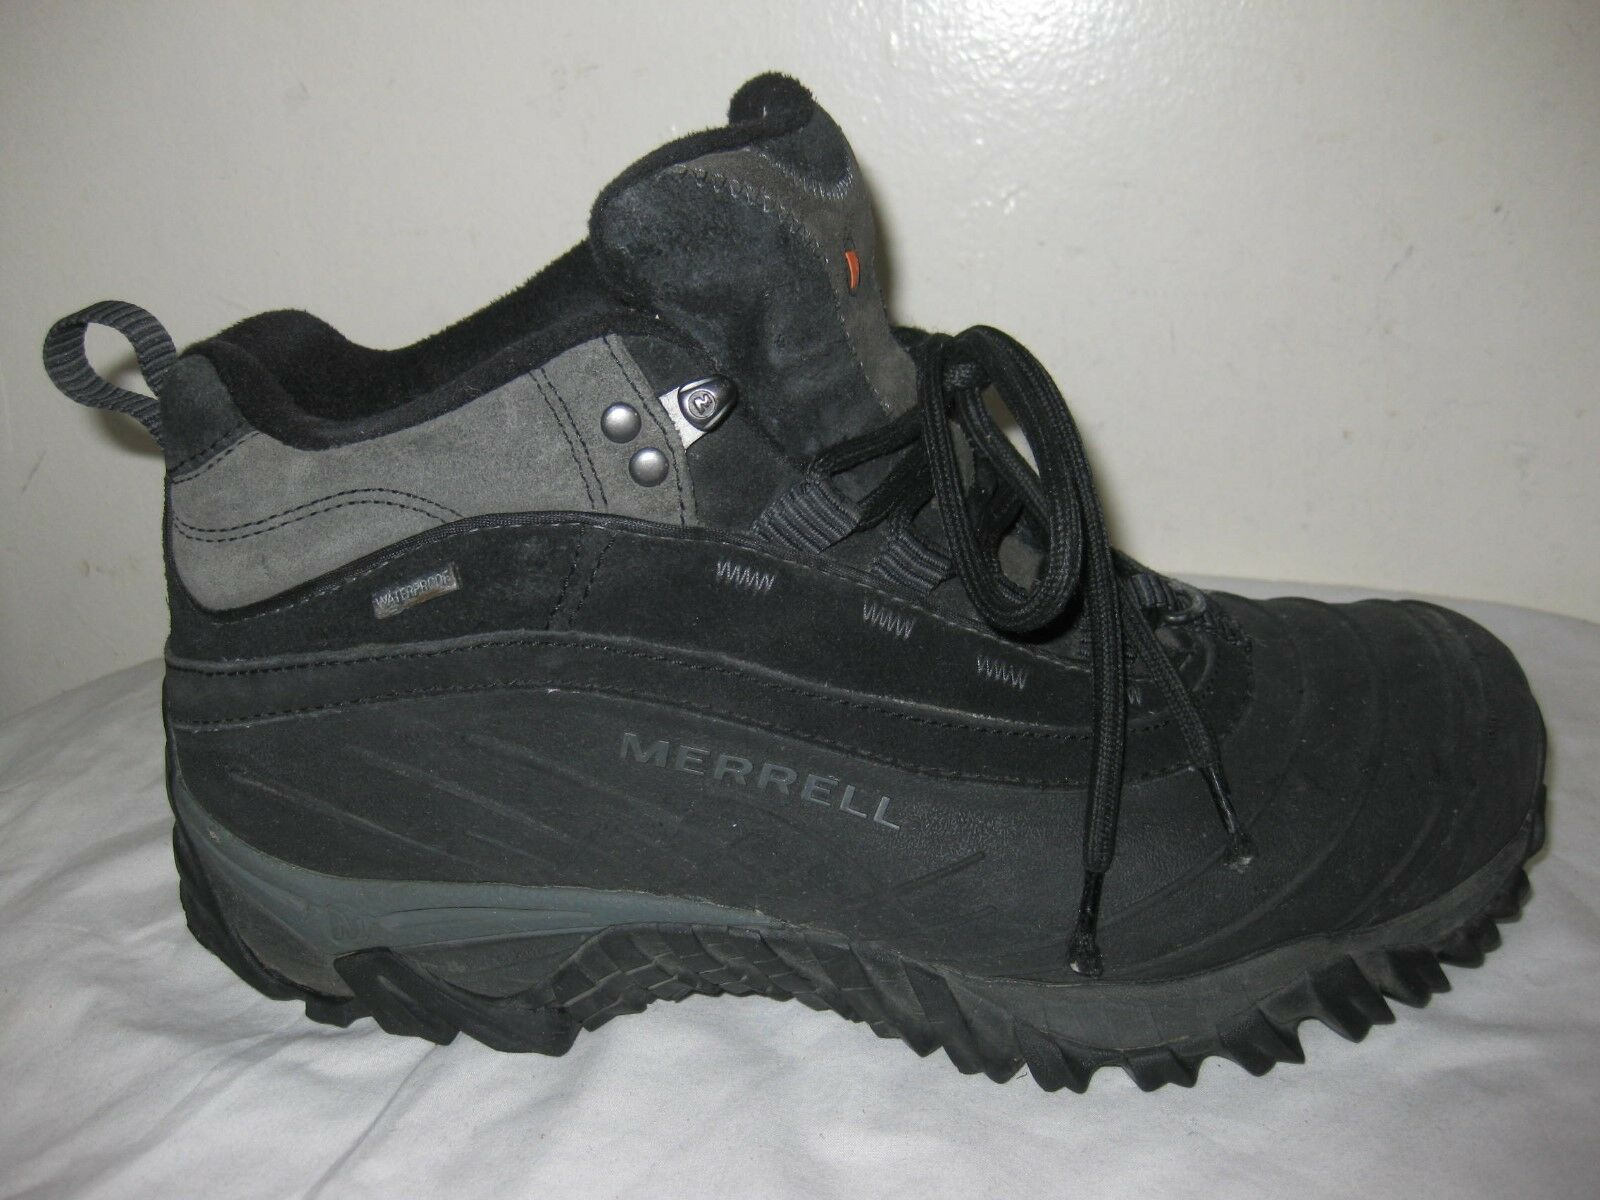 Merrell Isotherm 6  Waterproof Black   Shadow Boots  MenSs shoes Size 43.5  9.5